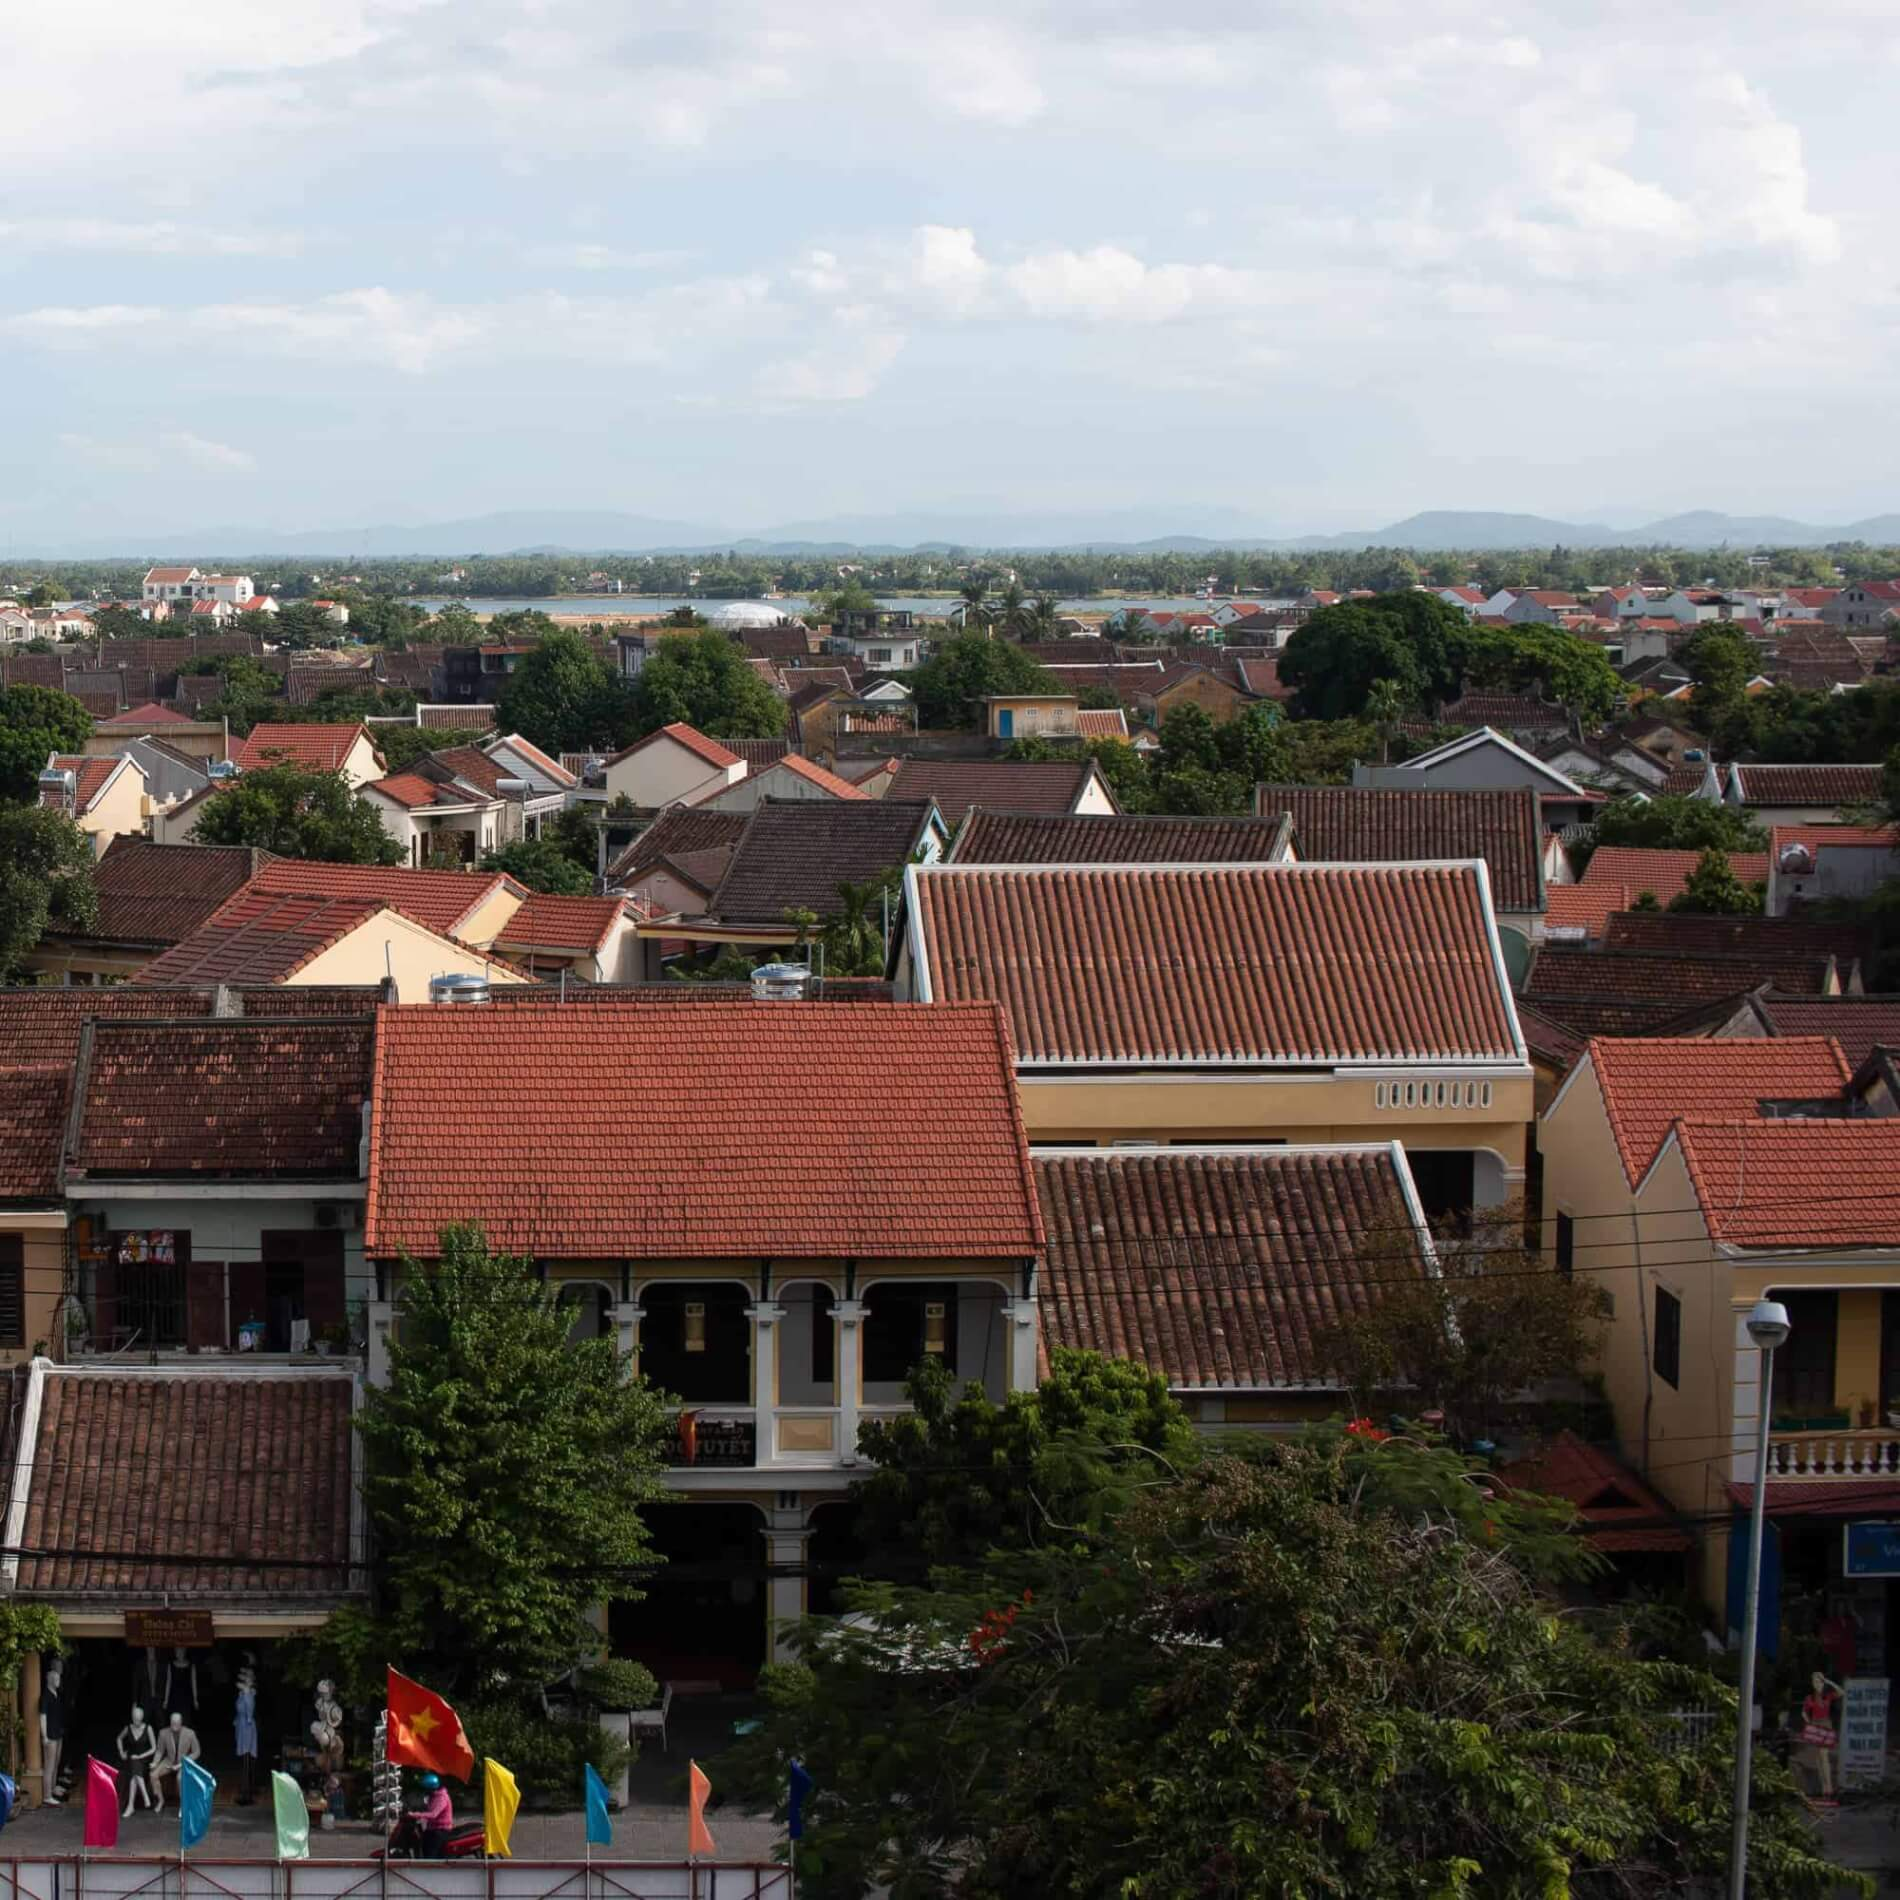 Hoi An rooftops from one of the Hoi An museums